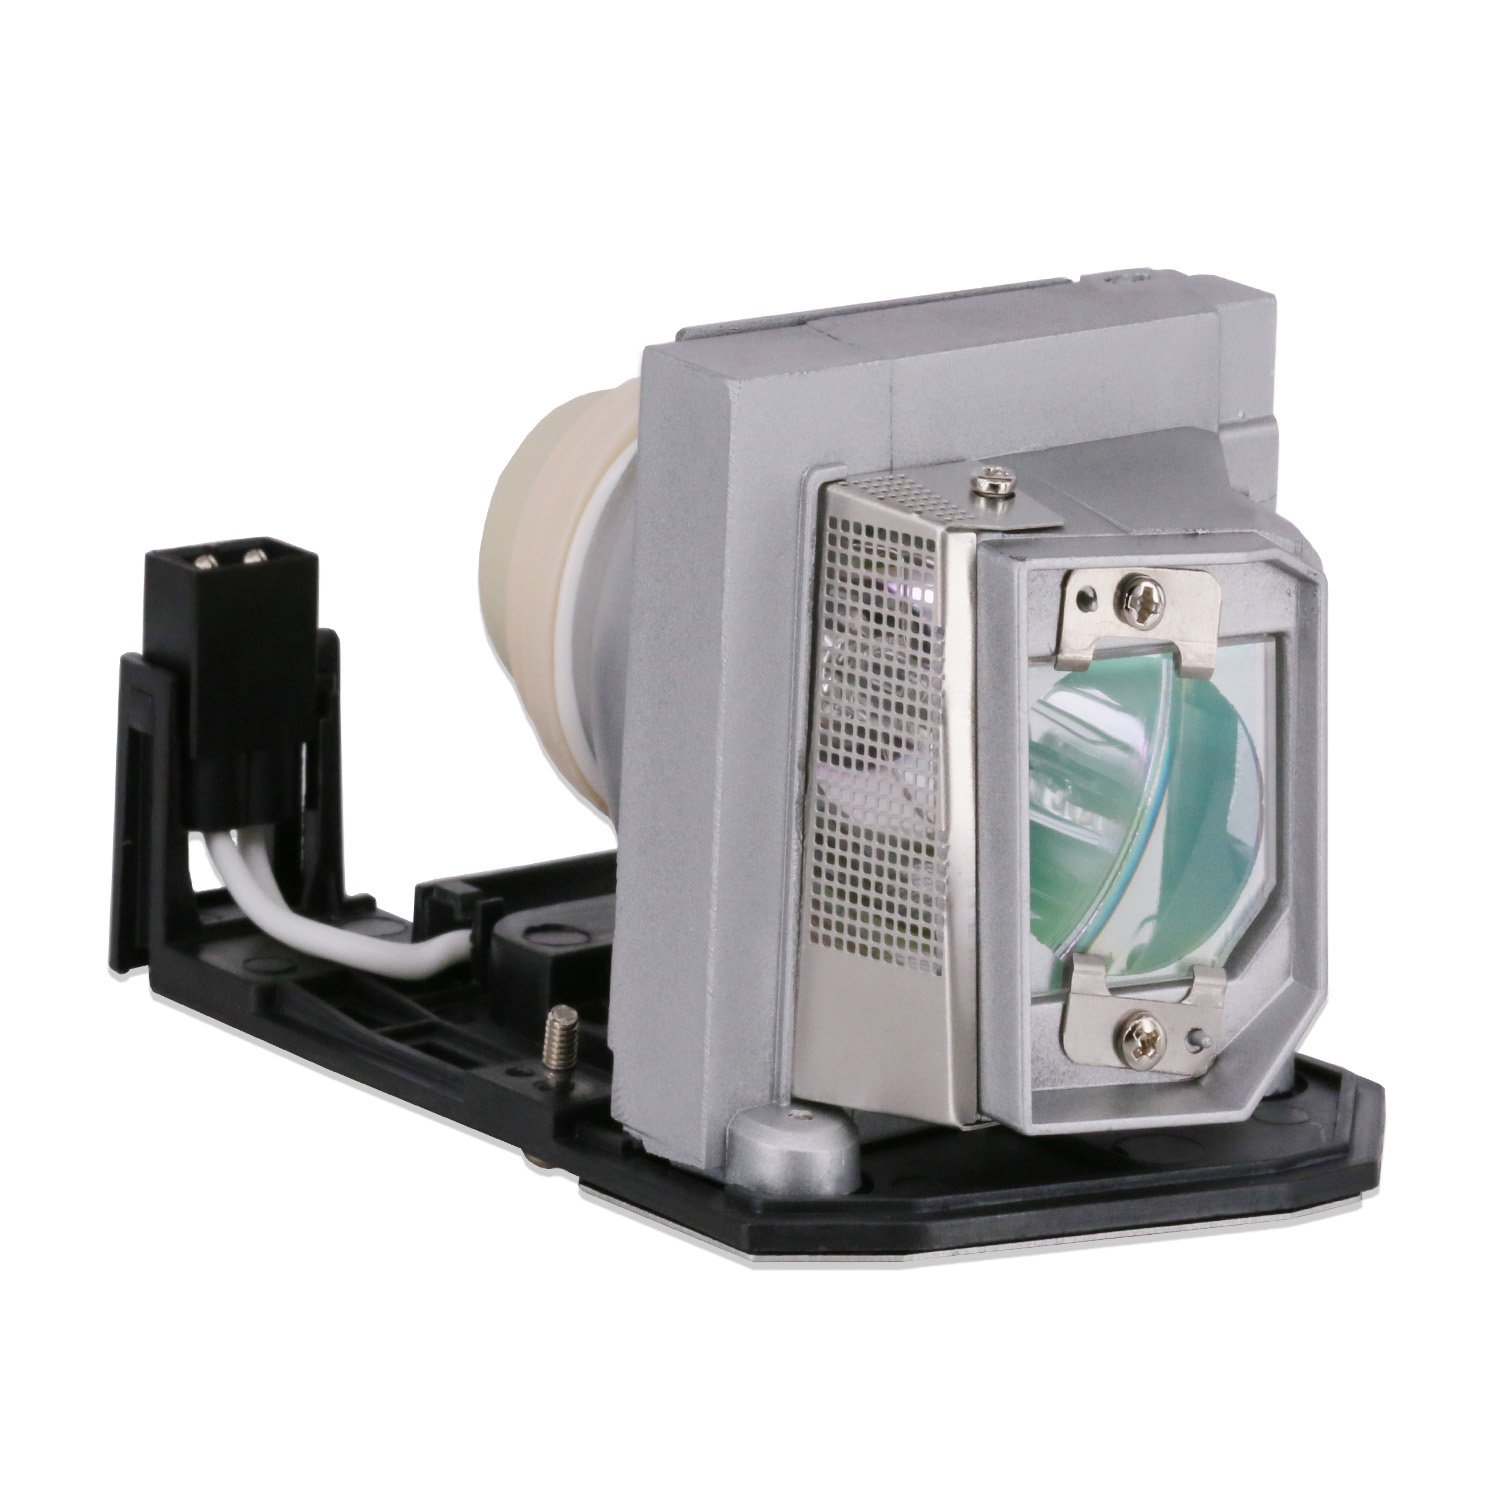 EWO'S BL-FU240A Replacement Projector Lamp for Optoma HD25-LV DH1011 HD25 EH300 HD25e HD131Xe Lamp Bulb Replacement